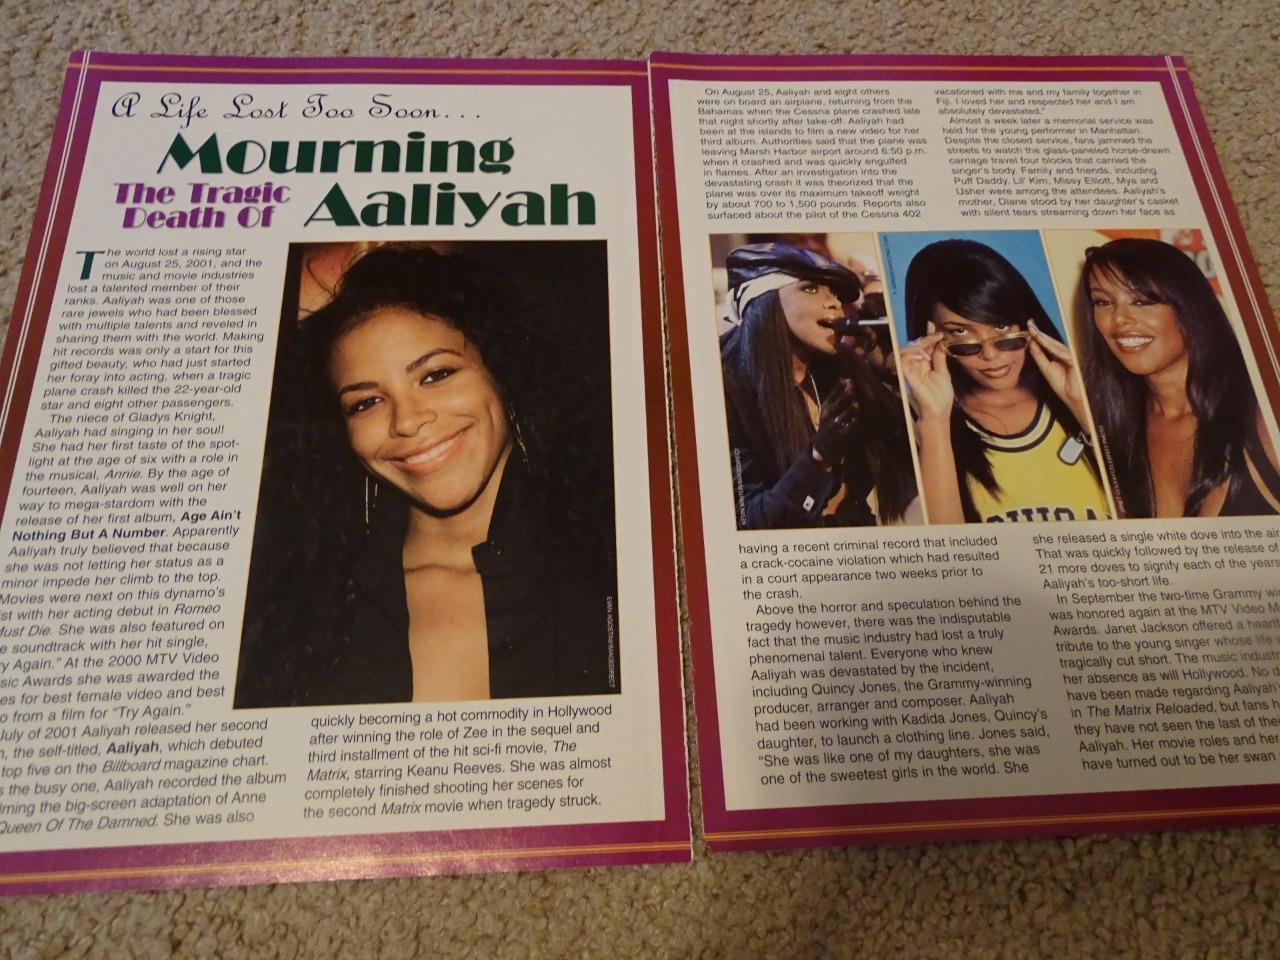 Aaliyah teen magazine pinup clipping Popstar Tiger Beat Bop Teen Beat